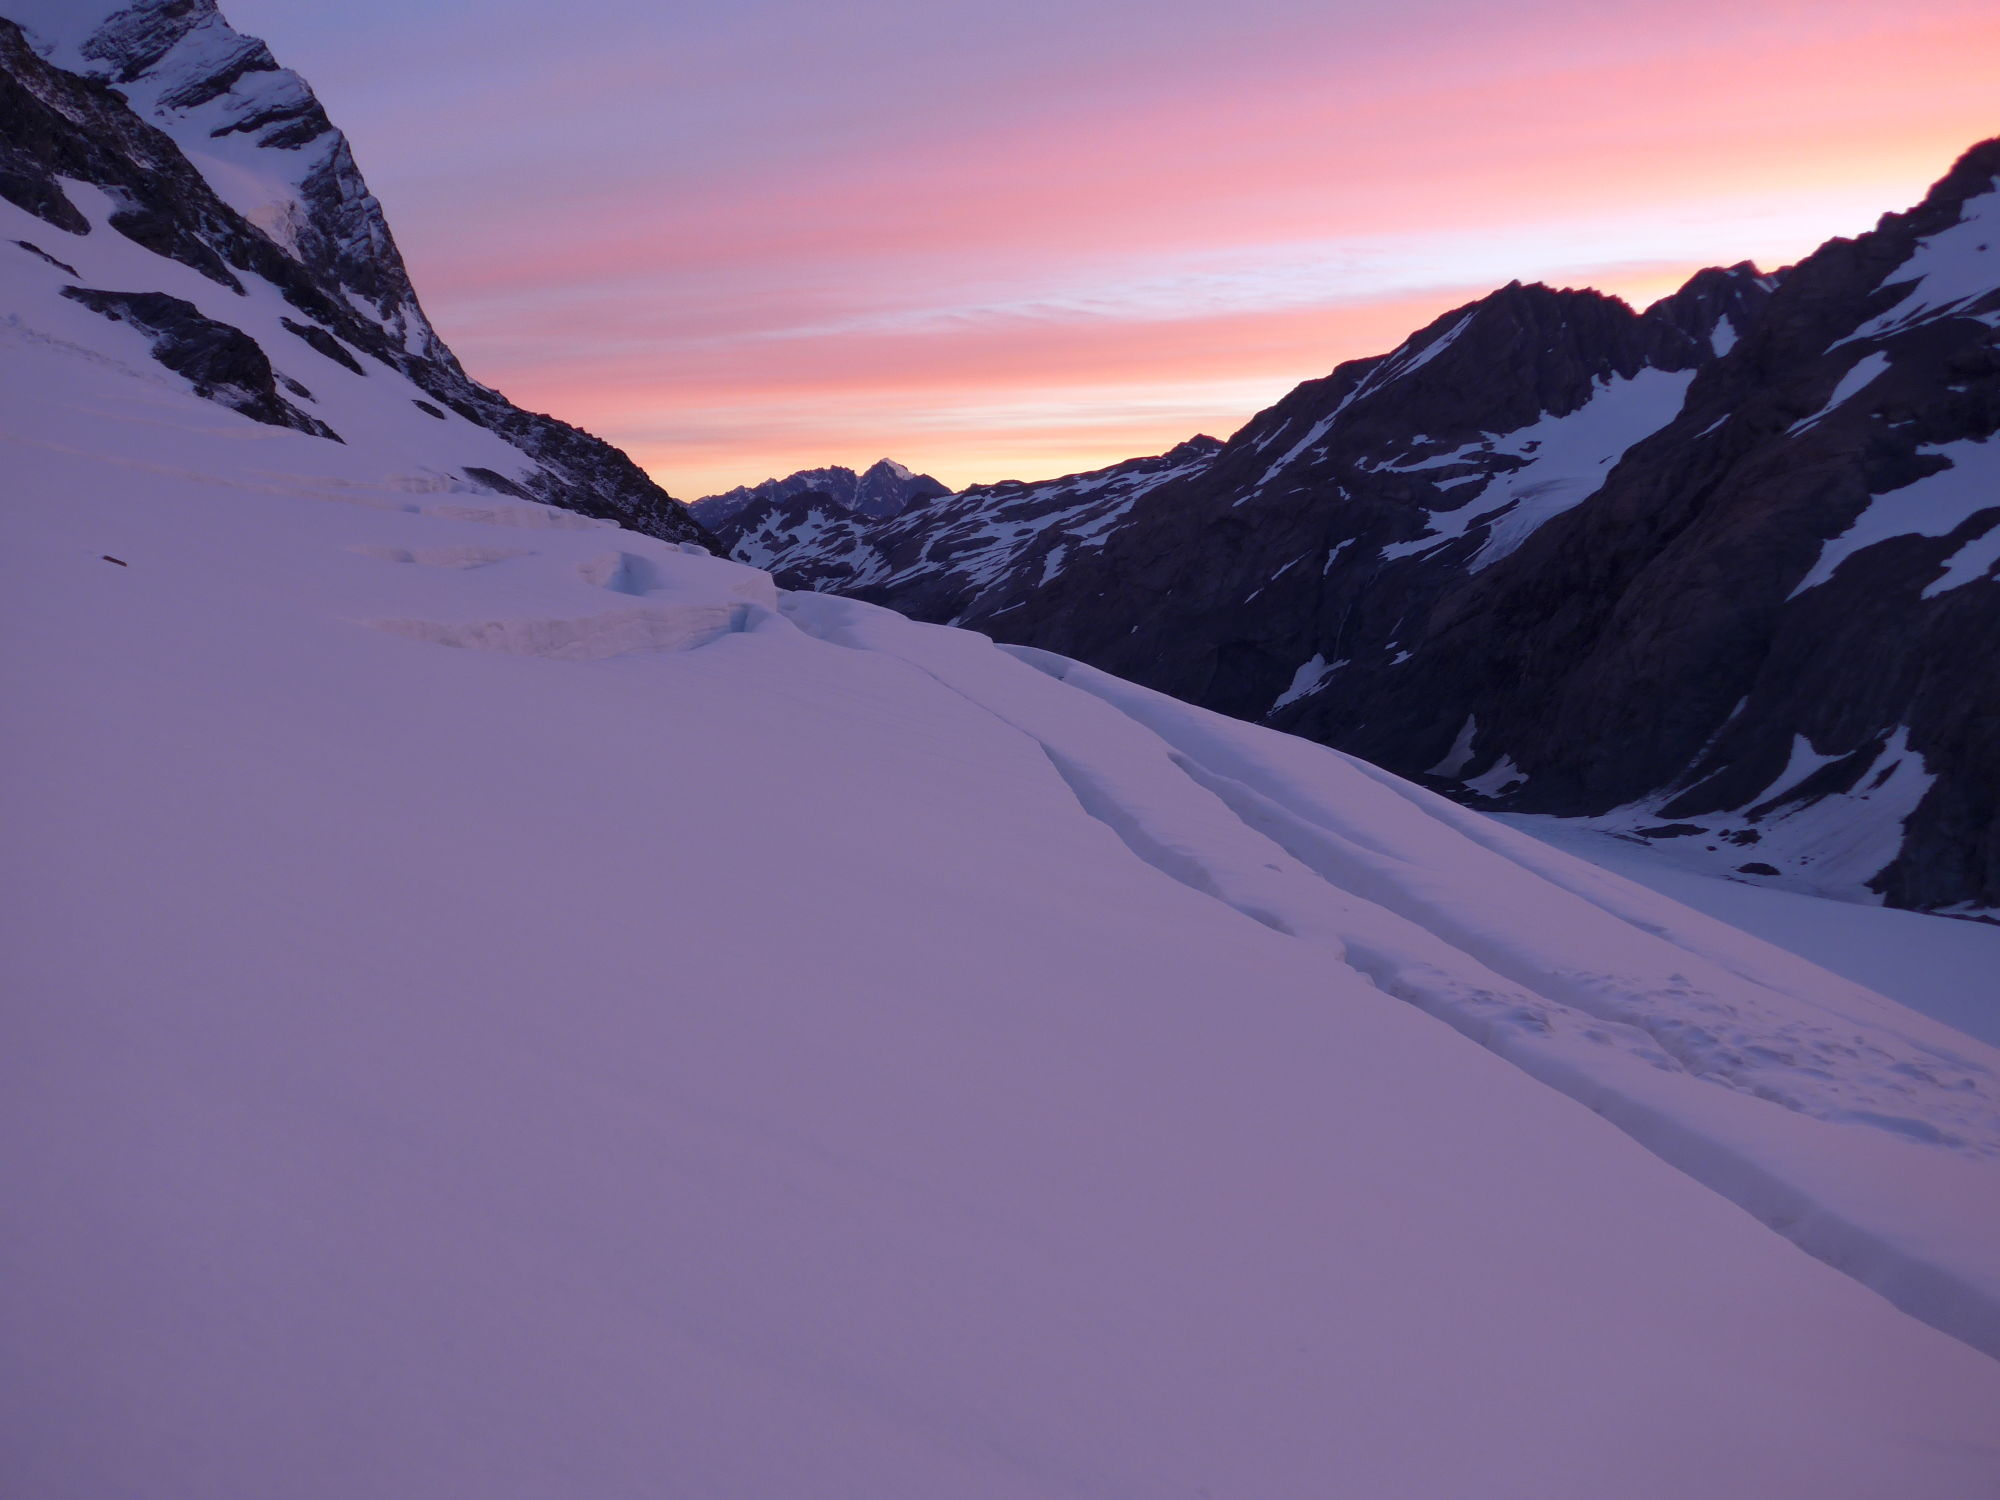 Sunrise in the Southern Alps of New Zealand while ascending Mount Burns.